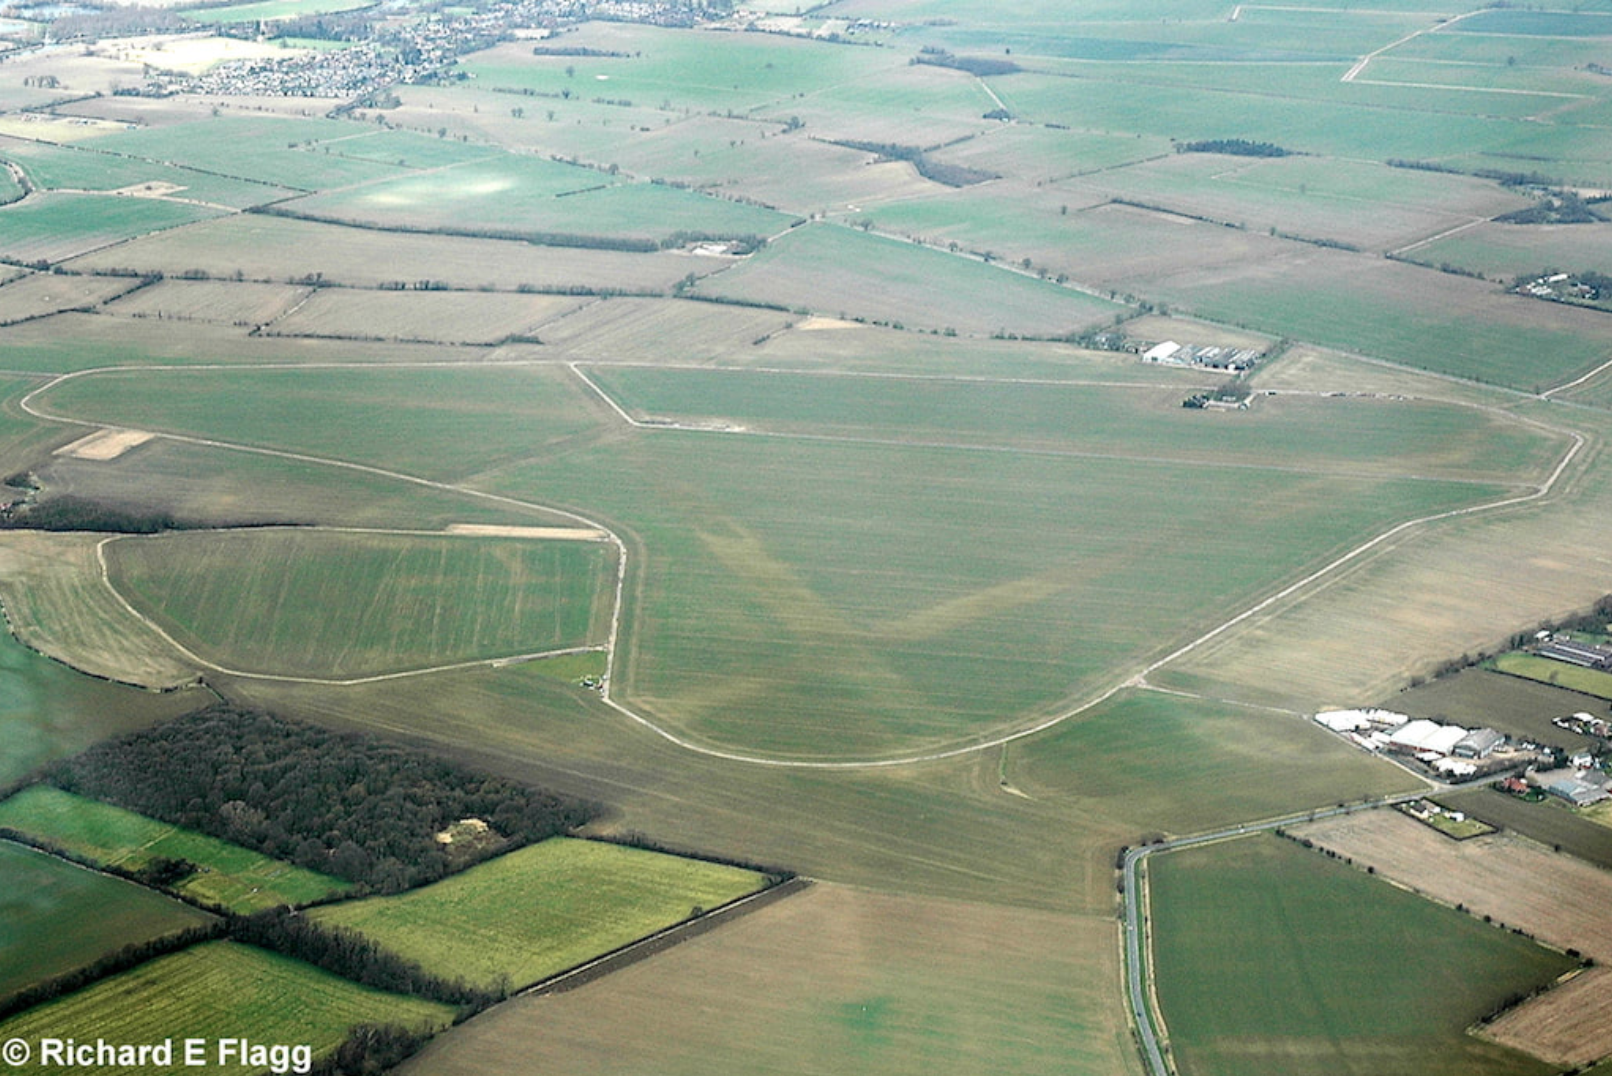 014Aerial View of RAF Graveley Airfield - 14 March 2009.png